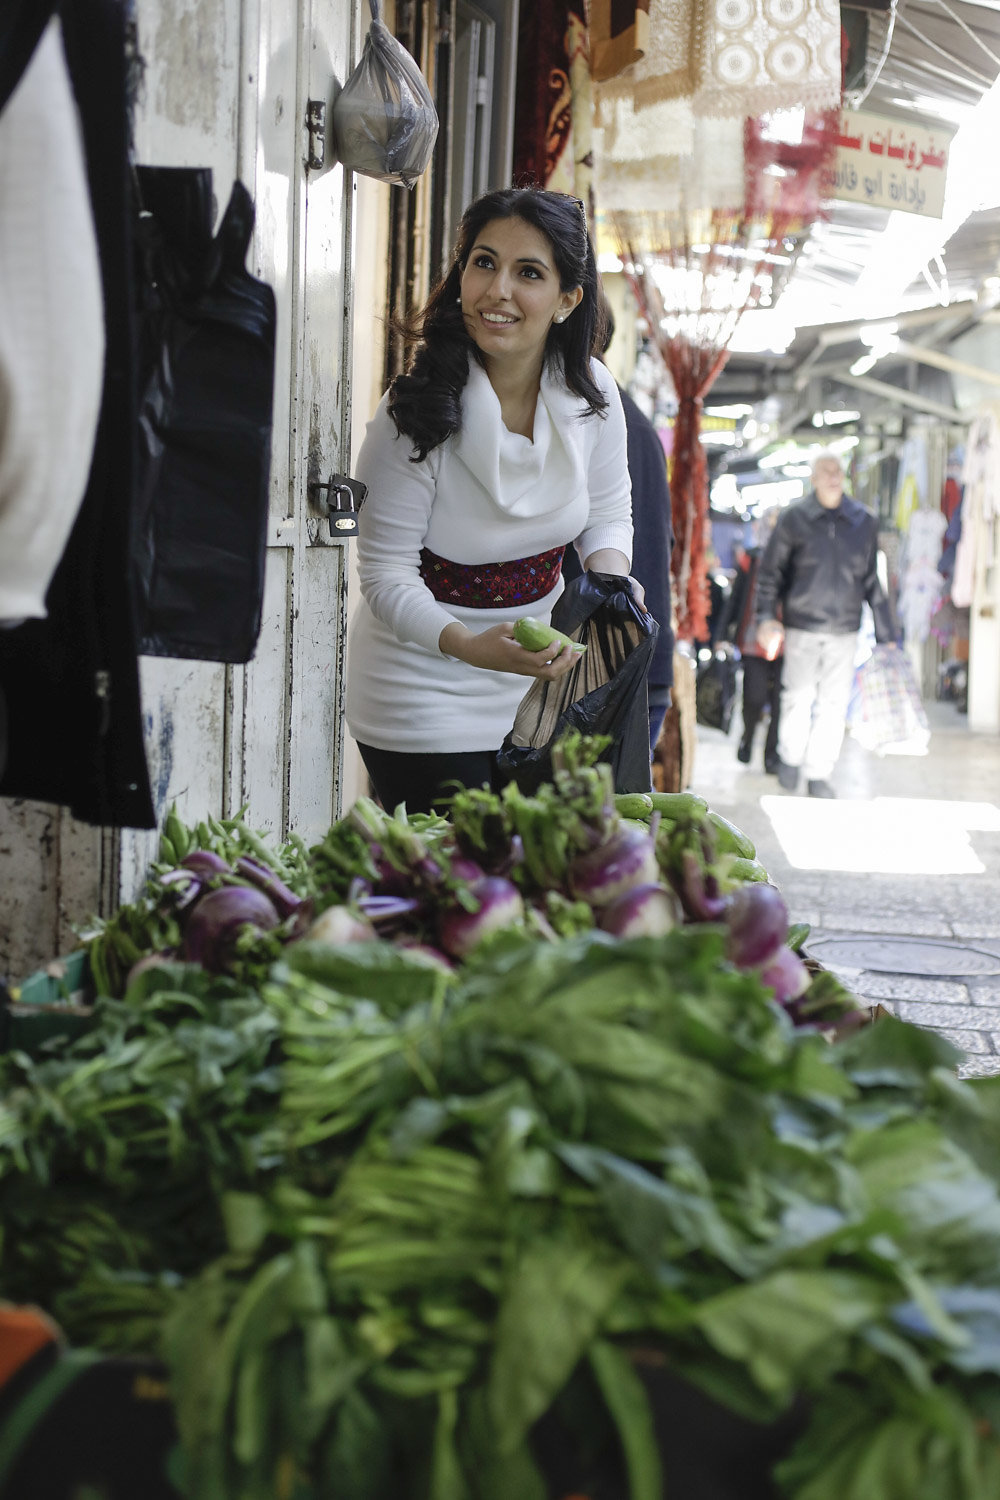 An insider's guide to Palestinian cookery